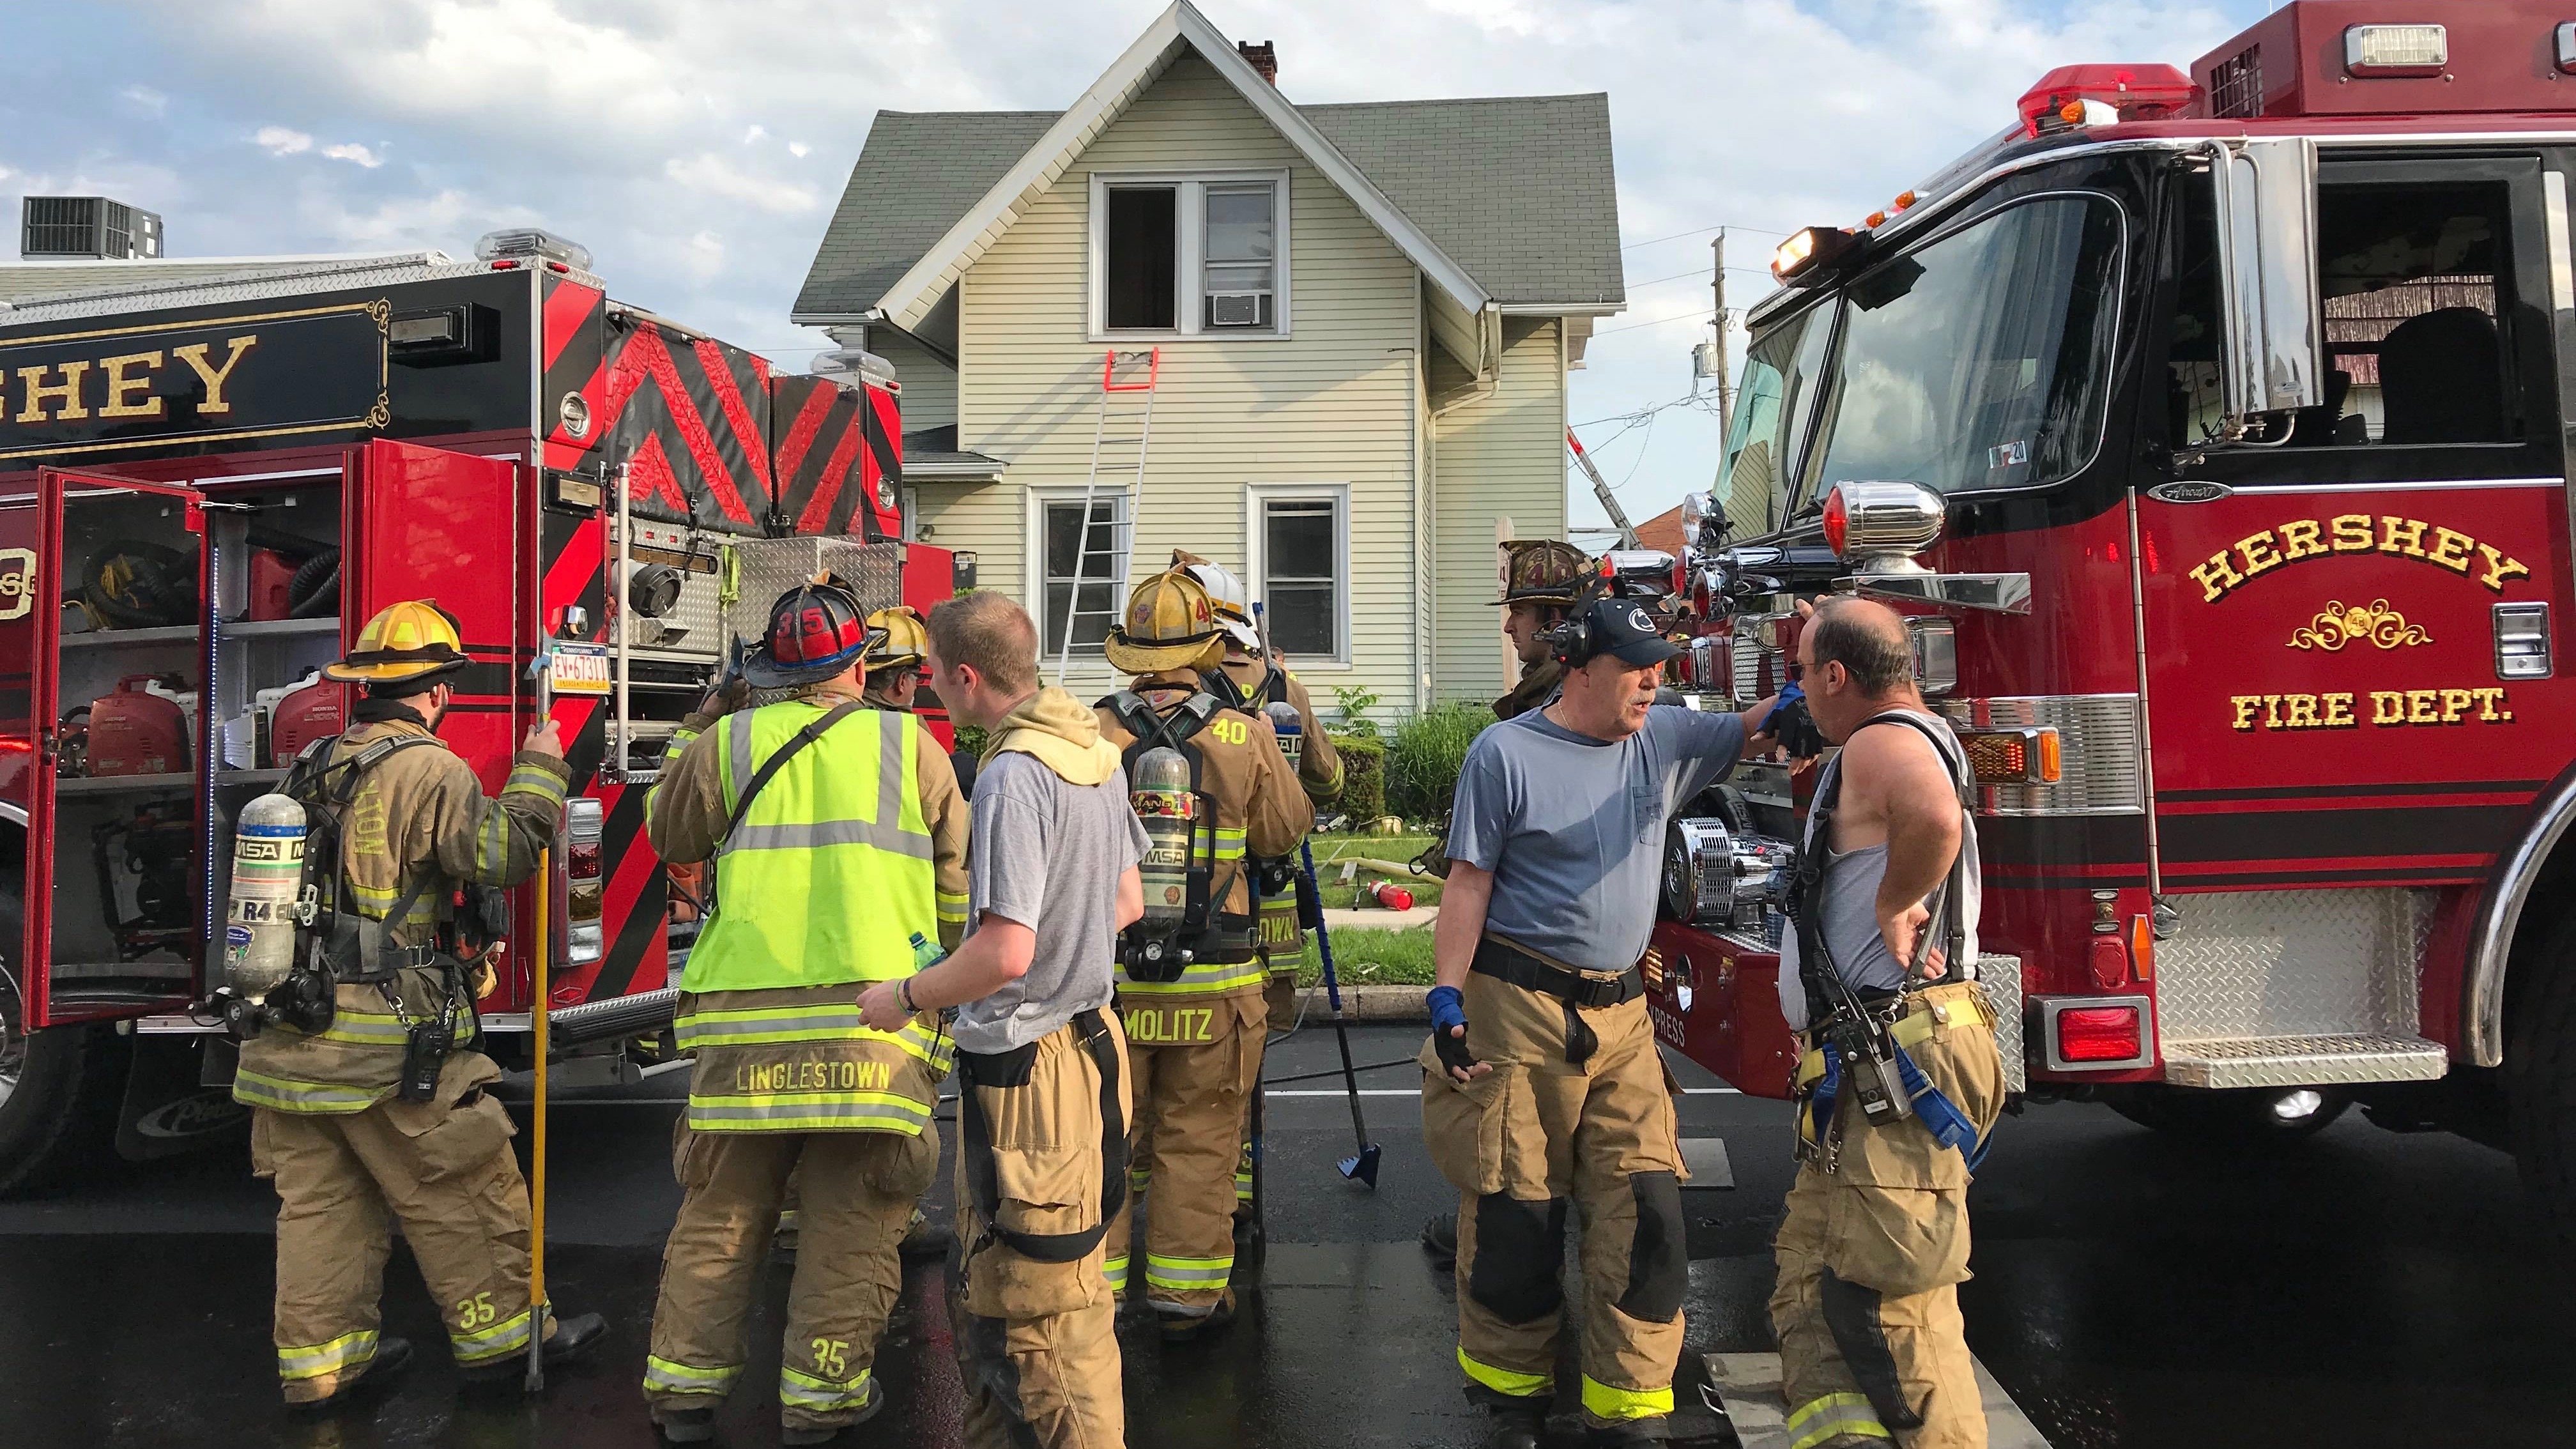 1 dead in Hershey house fire: reports